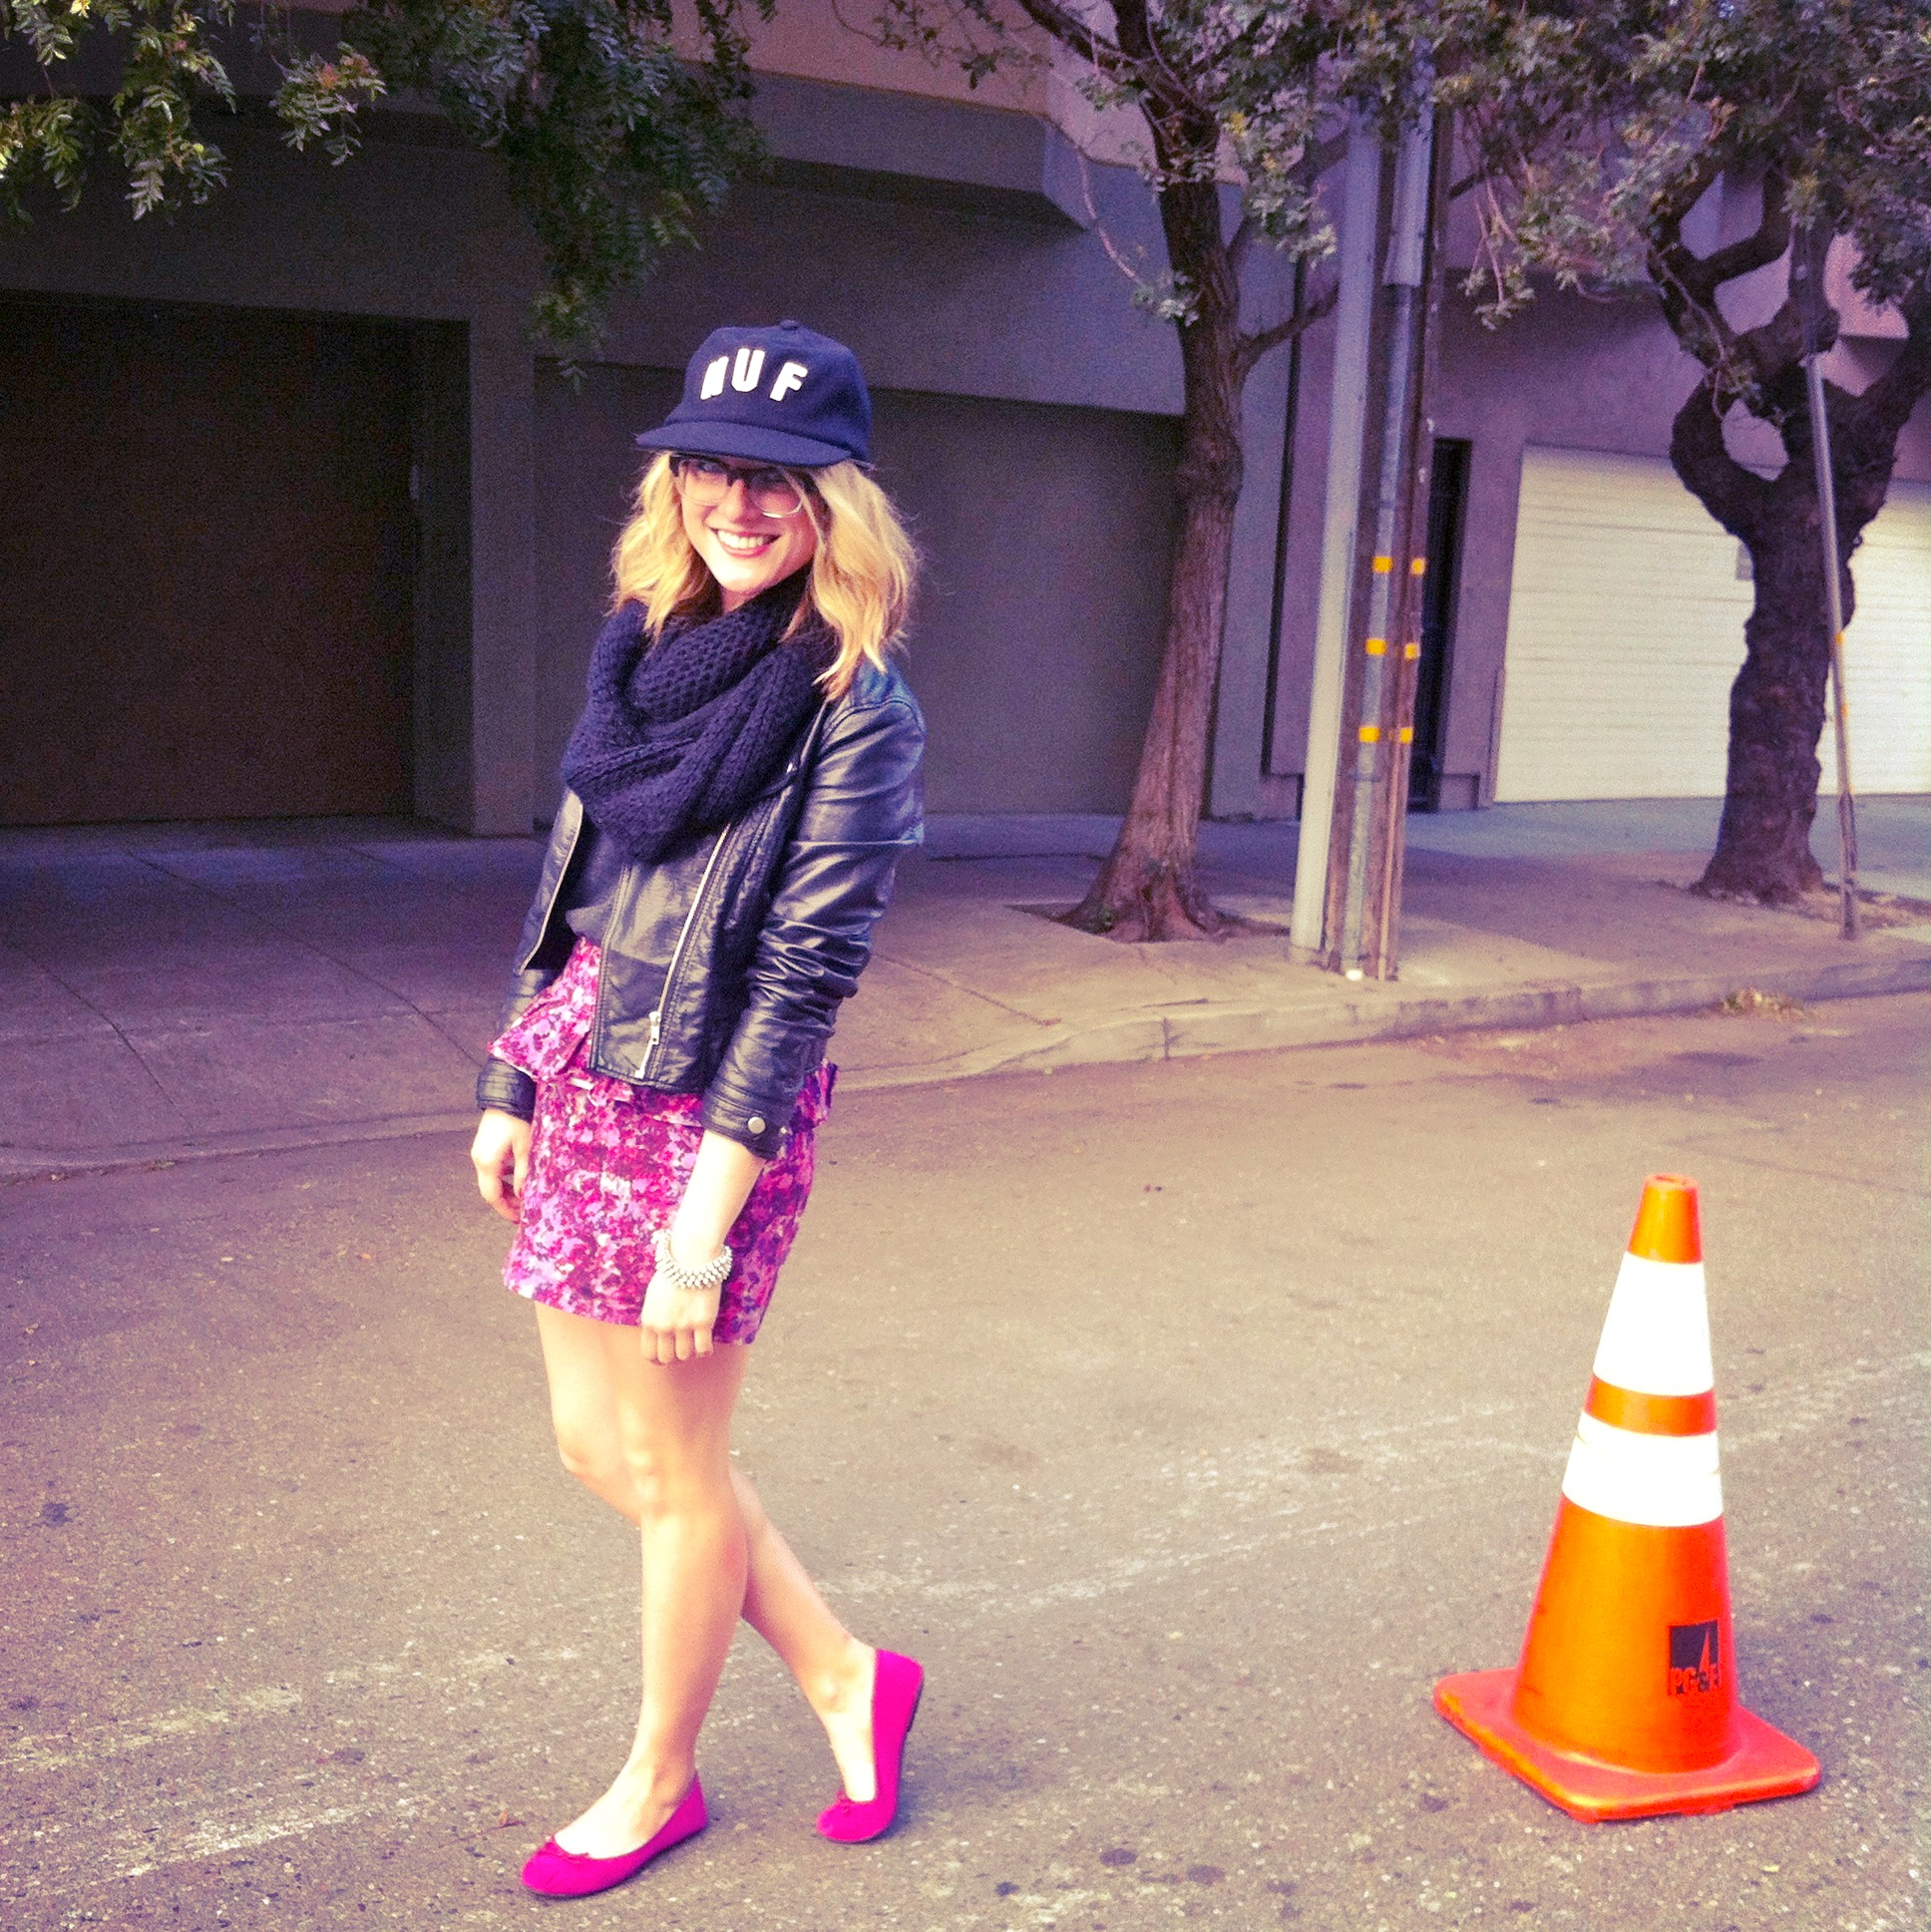 Hat: Huf via Benny Gold | Jacket: F21 | Shirt: ON | Skirt: F21 | Shoes: Target